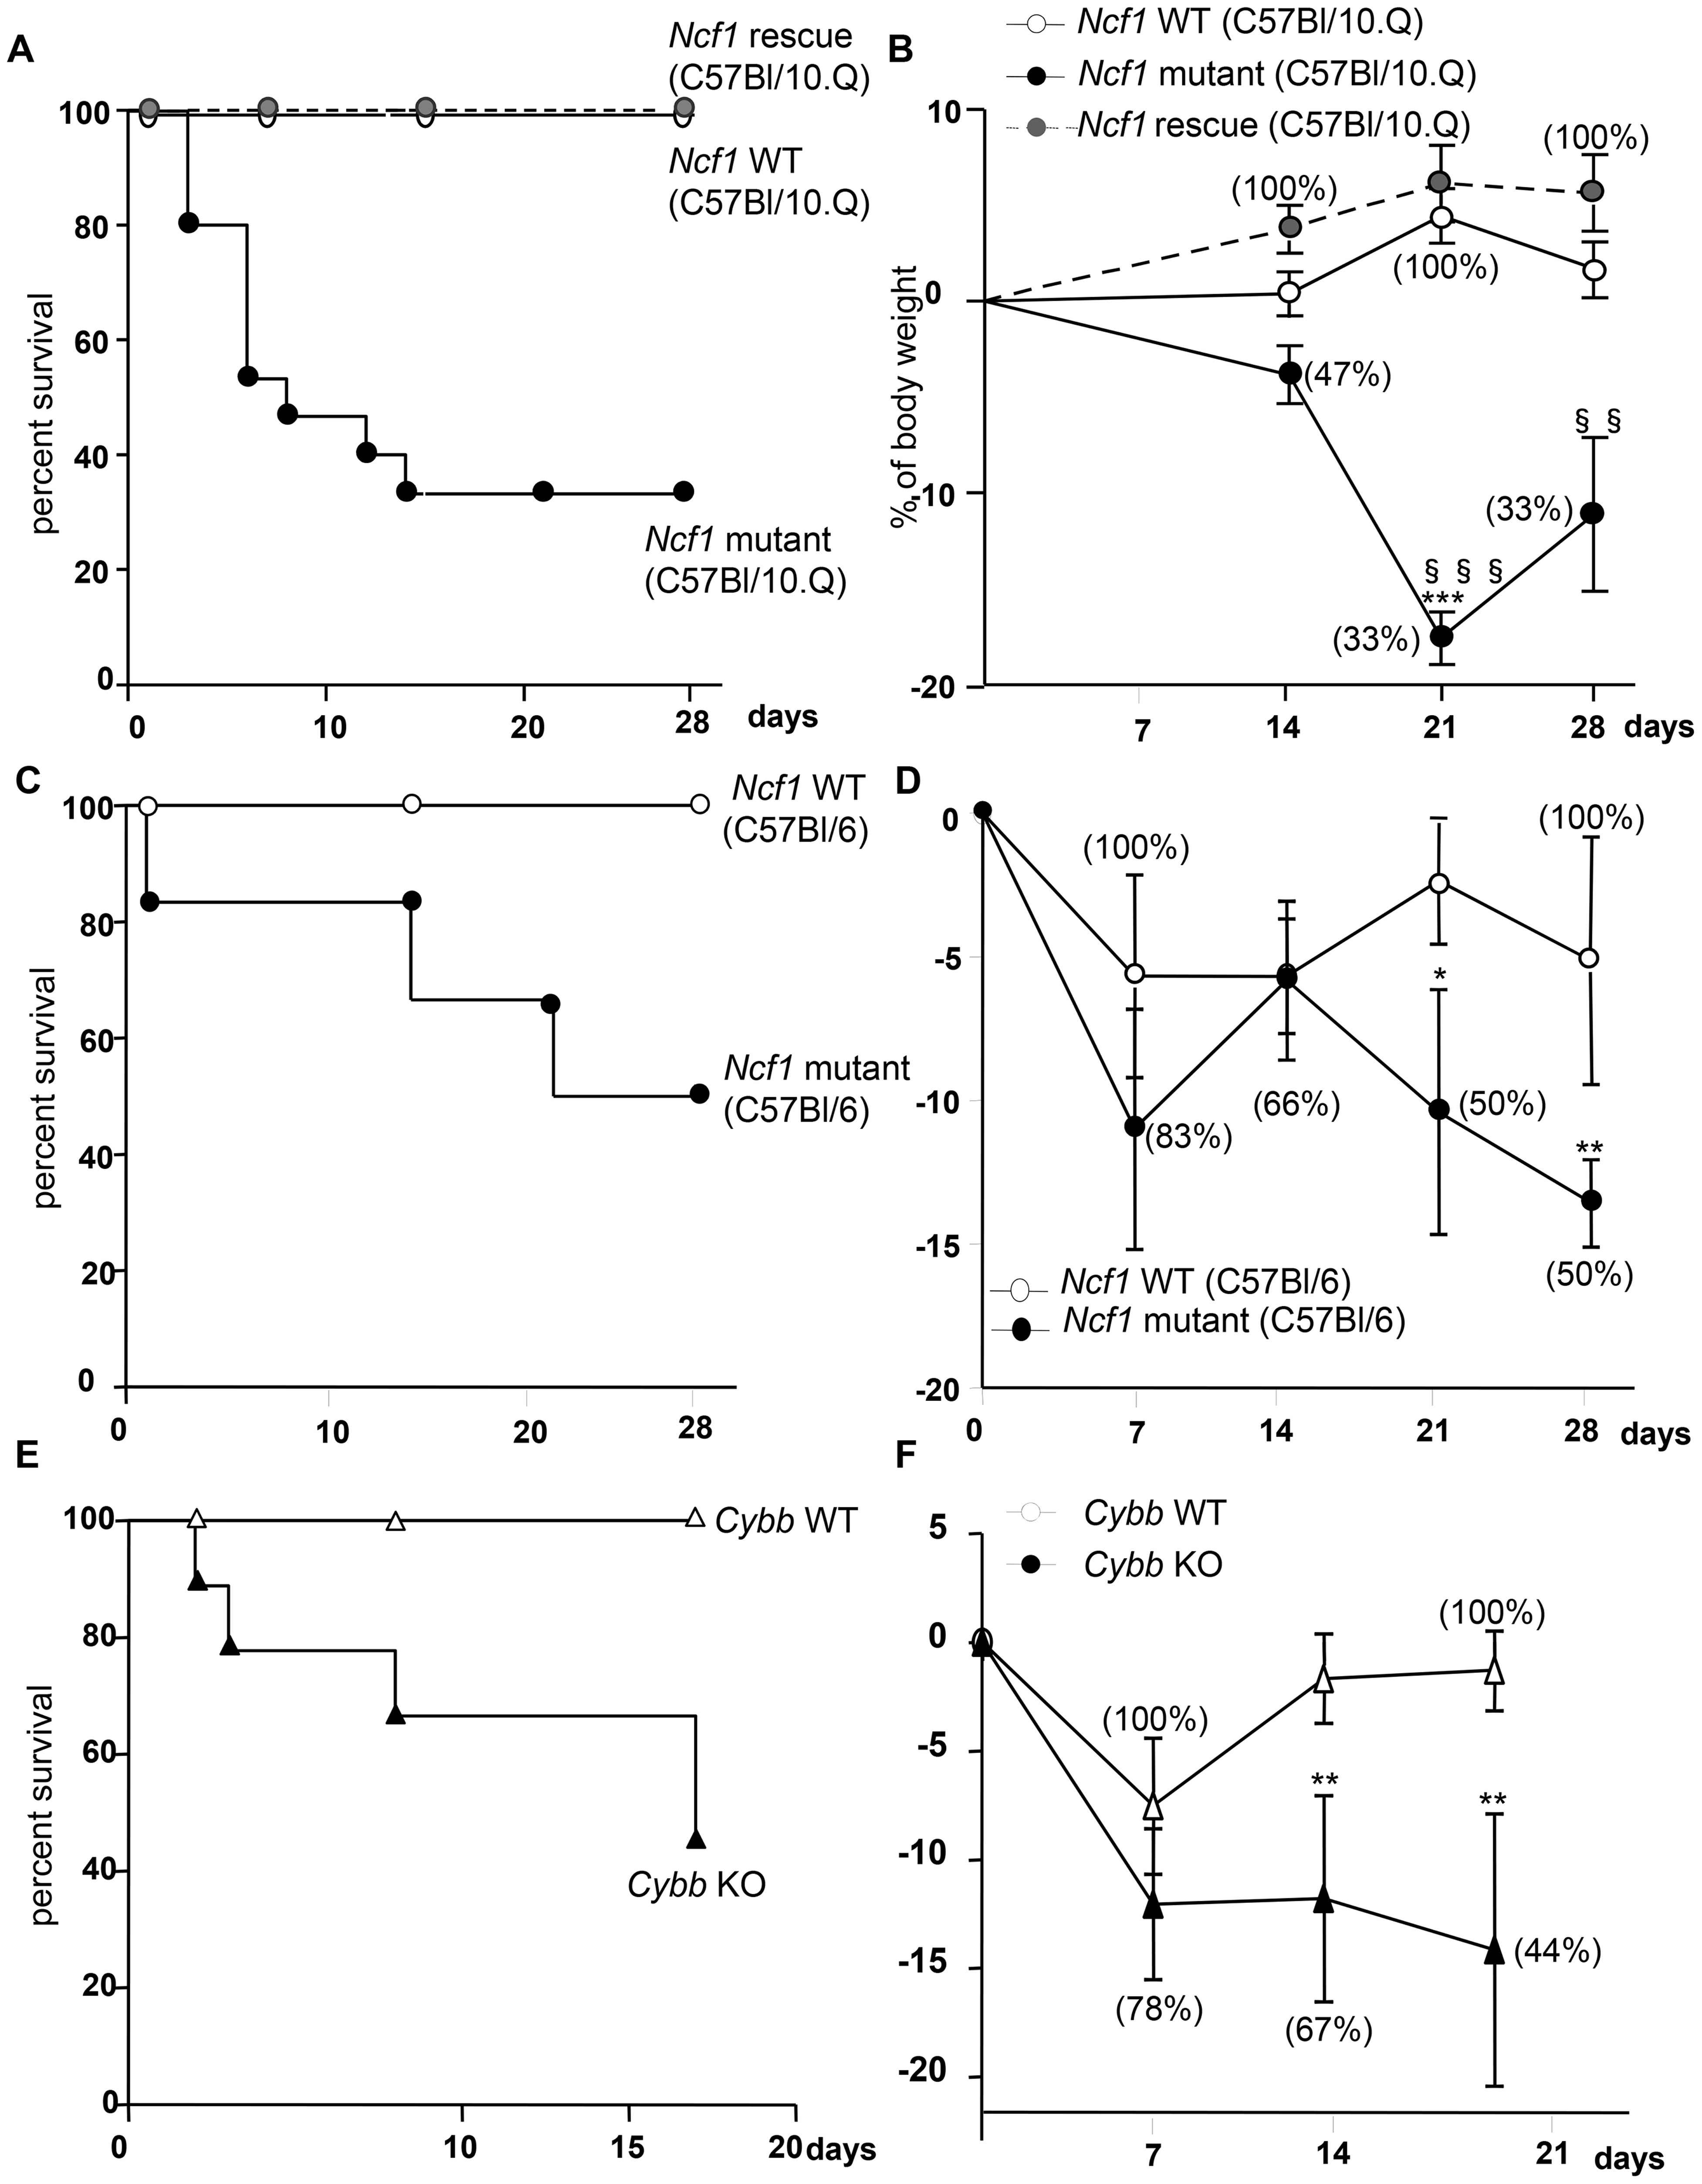 Impact of CGD mutation on mortality and weight loss in response to BCG infection.